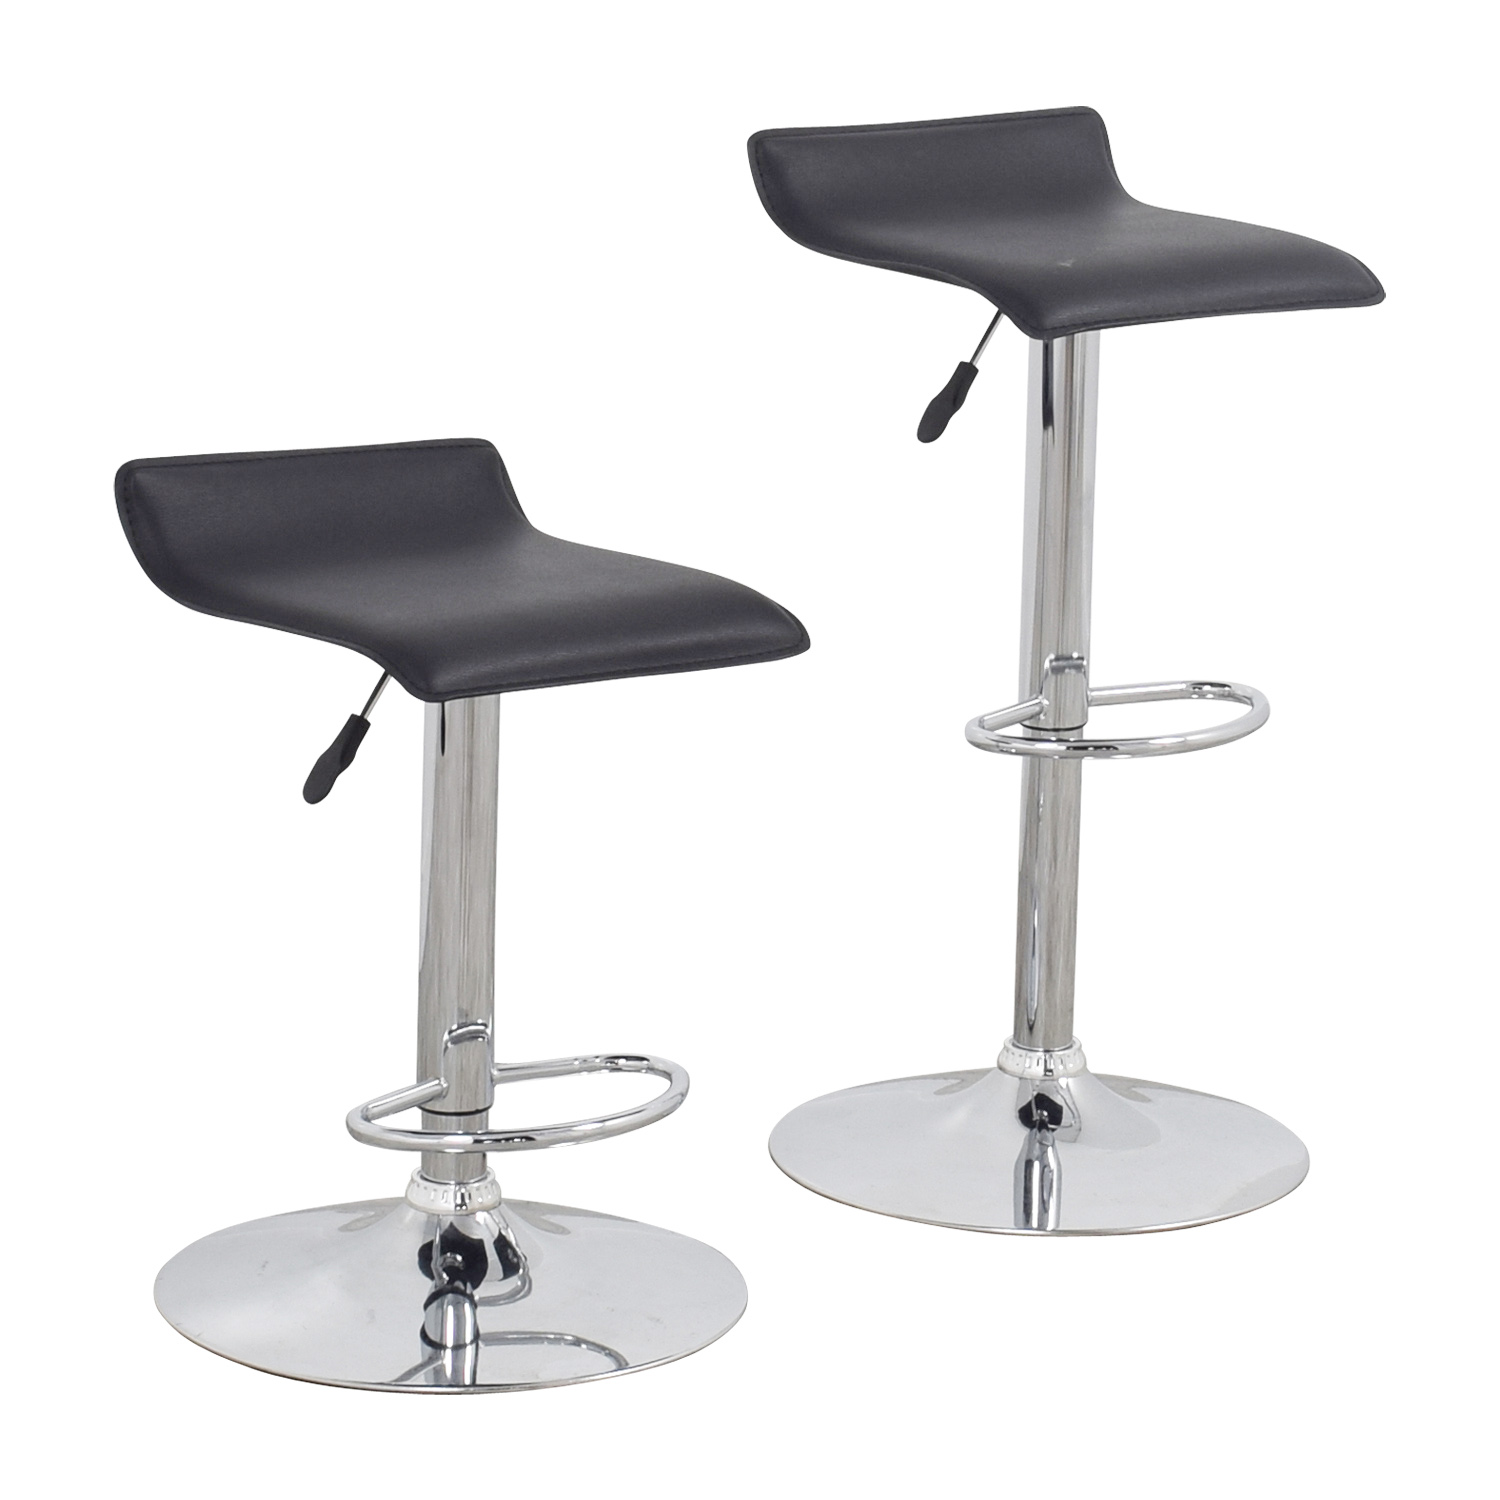 75 Off Black Bar Stools Chairs